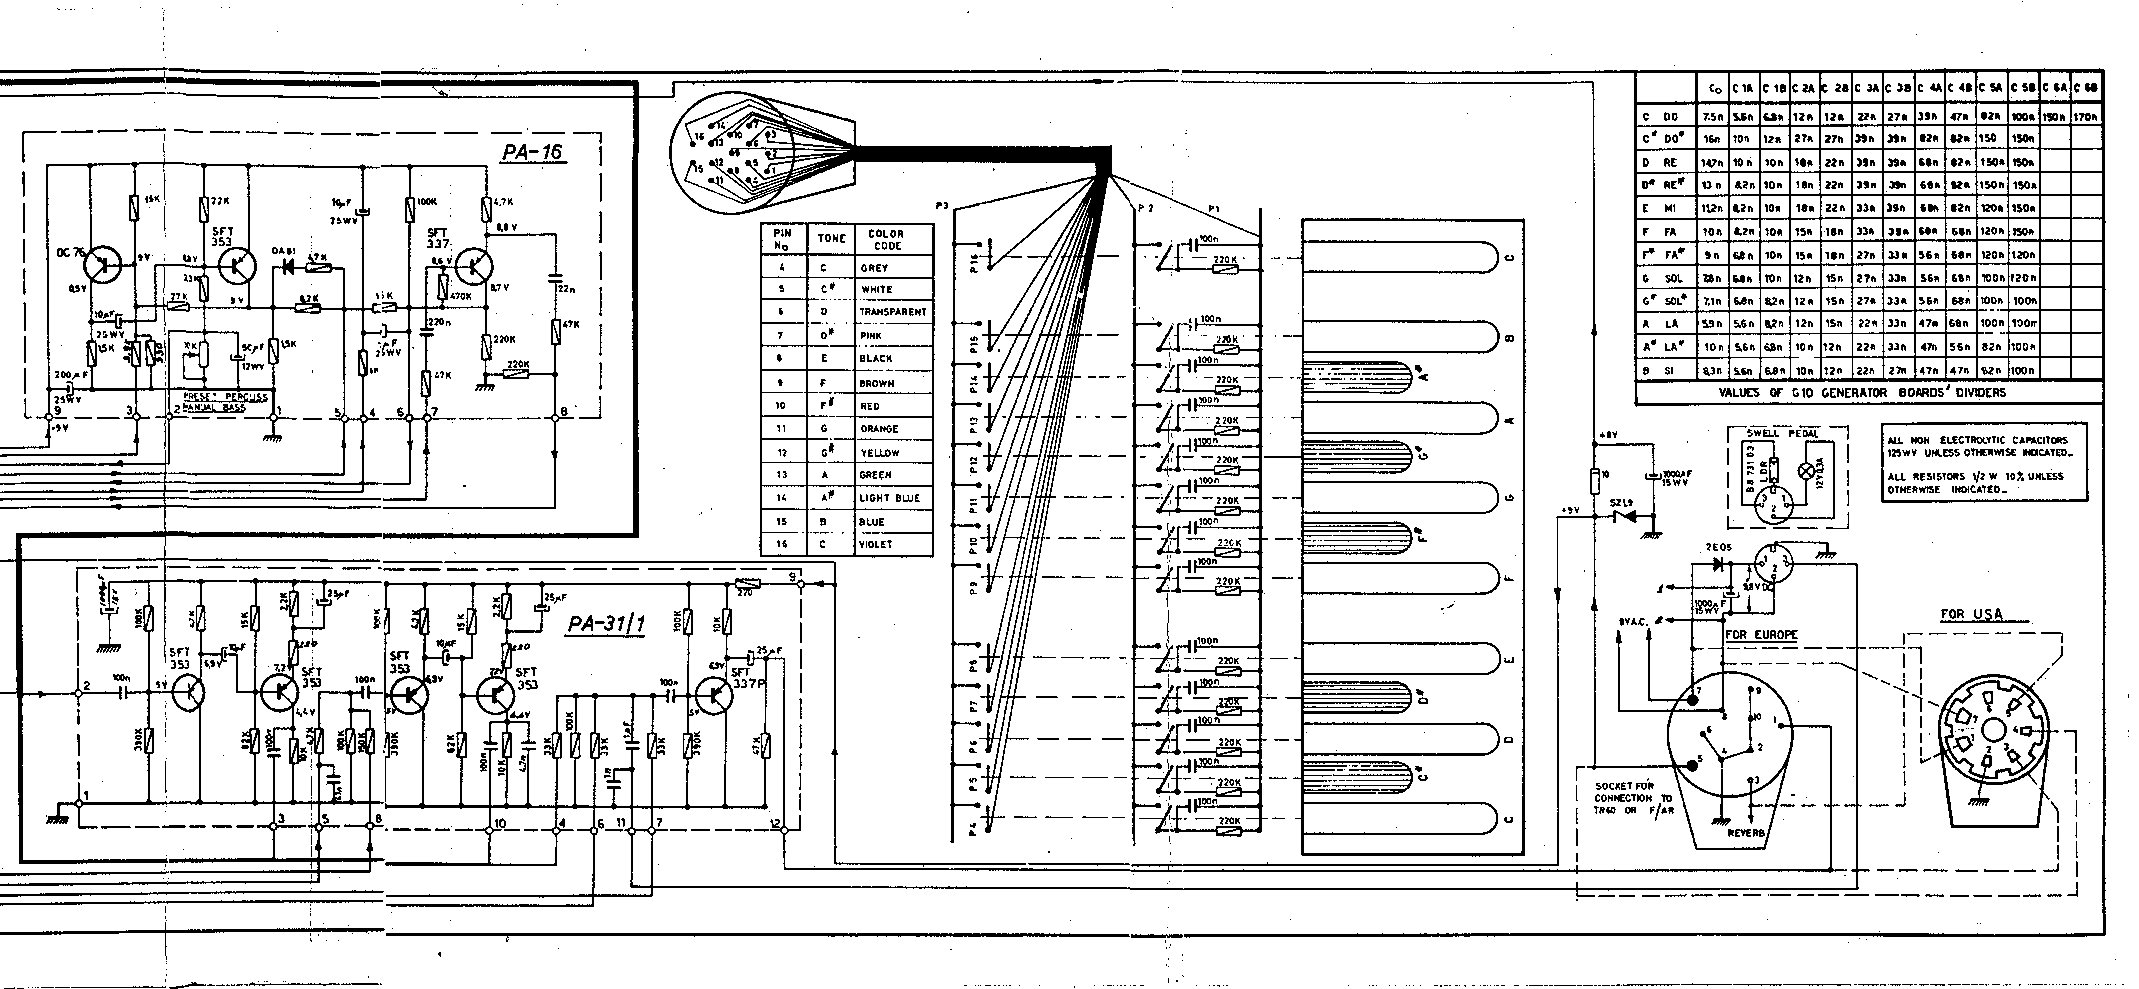 Guitar Amp Schematics Archive Trusted Wiring Diagrams Bass Diagram Farfisa U2022 5 Watt